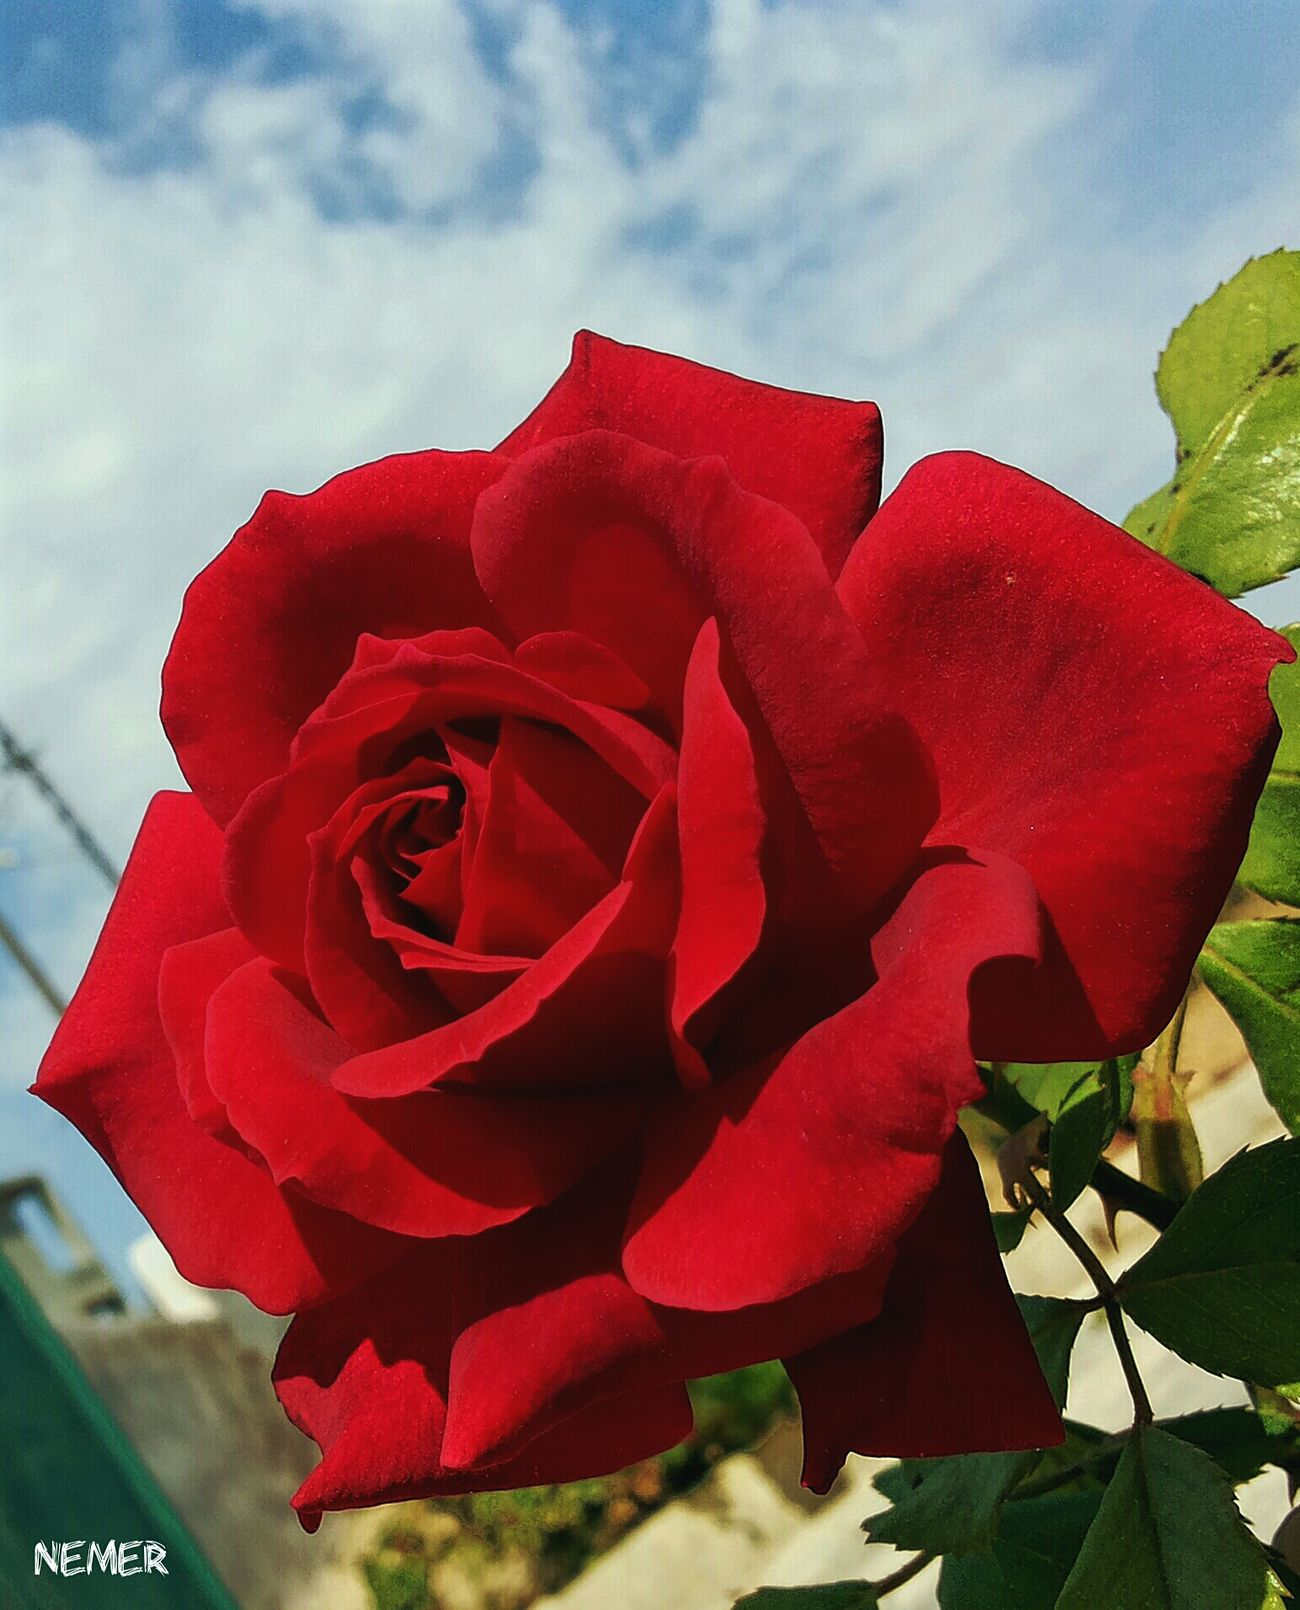 Jordan Amman Sunrise Light And Shadow Beautiful First Eyeem Photo Red Eyem Nature Sky Spring Flowers,Plants & Garden Green Nature Flower Spring Flowers Red Roses Love ♥ Rose🌹 Roses Love